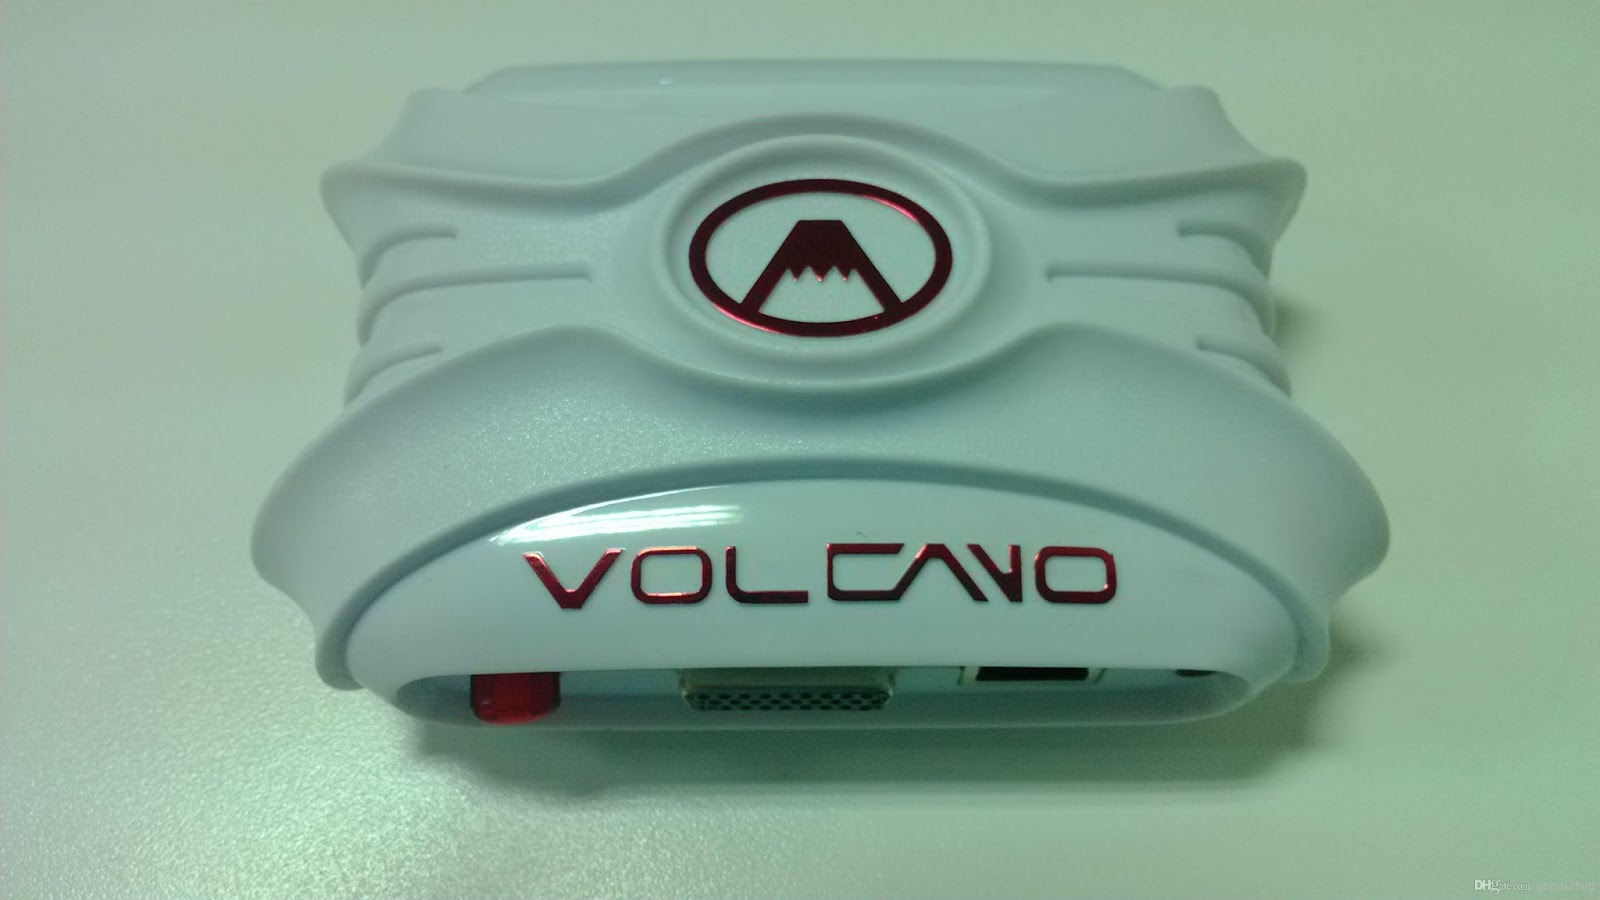 As you guys knows that VolcanoTeam is